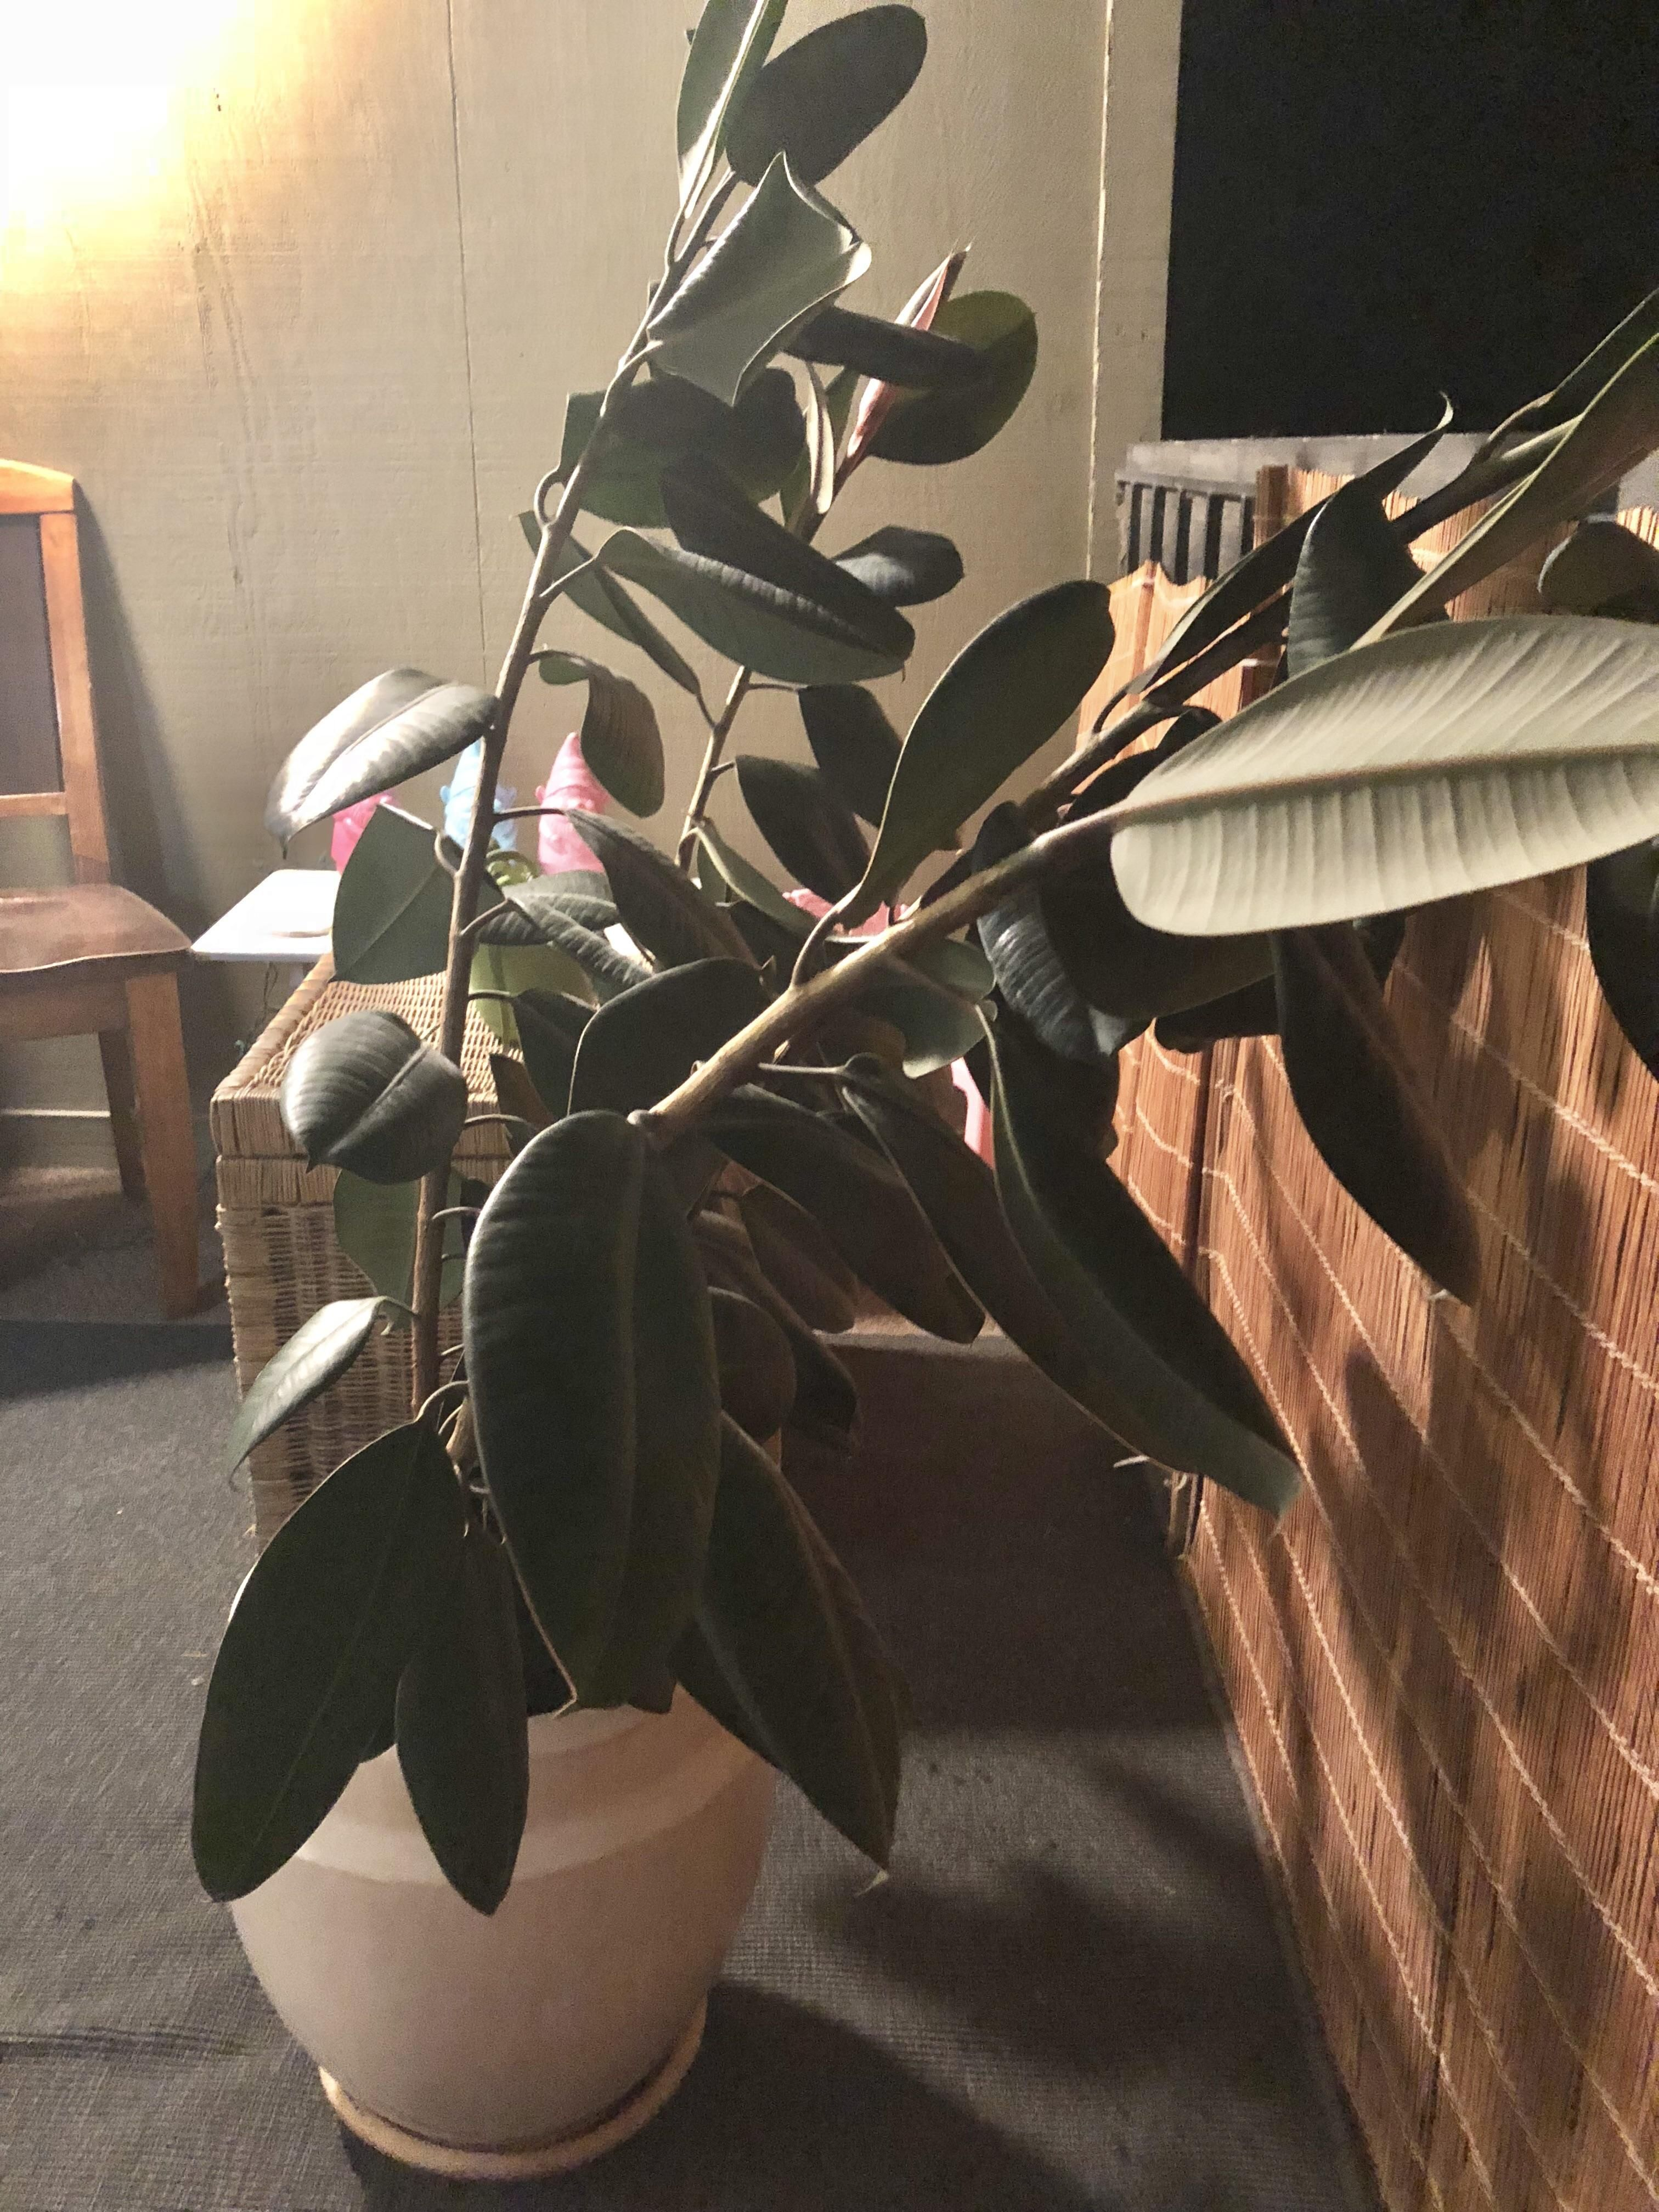 Droopy Rescued Rubber Tree Saved This Guy This Morning The Trunks Are Completely Droopy And 2 4 Nearly Touch The Ground Im S Rubber Tree Rubber Plant Plants